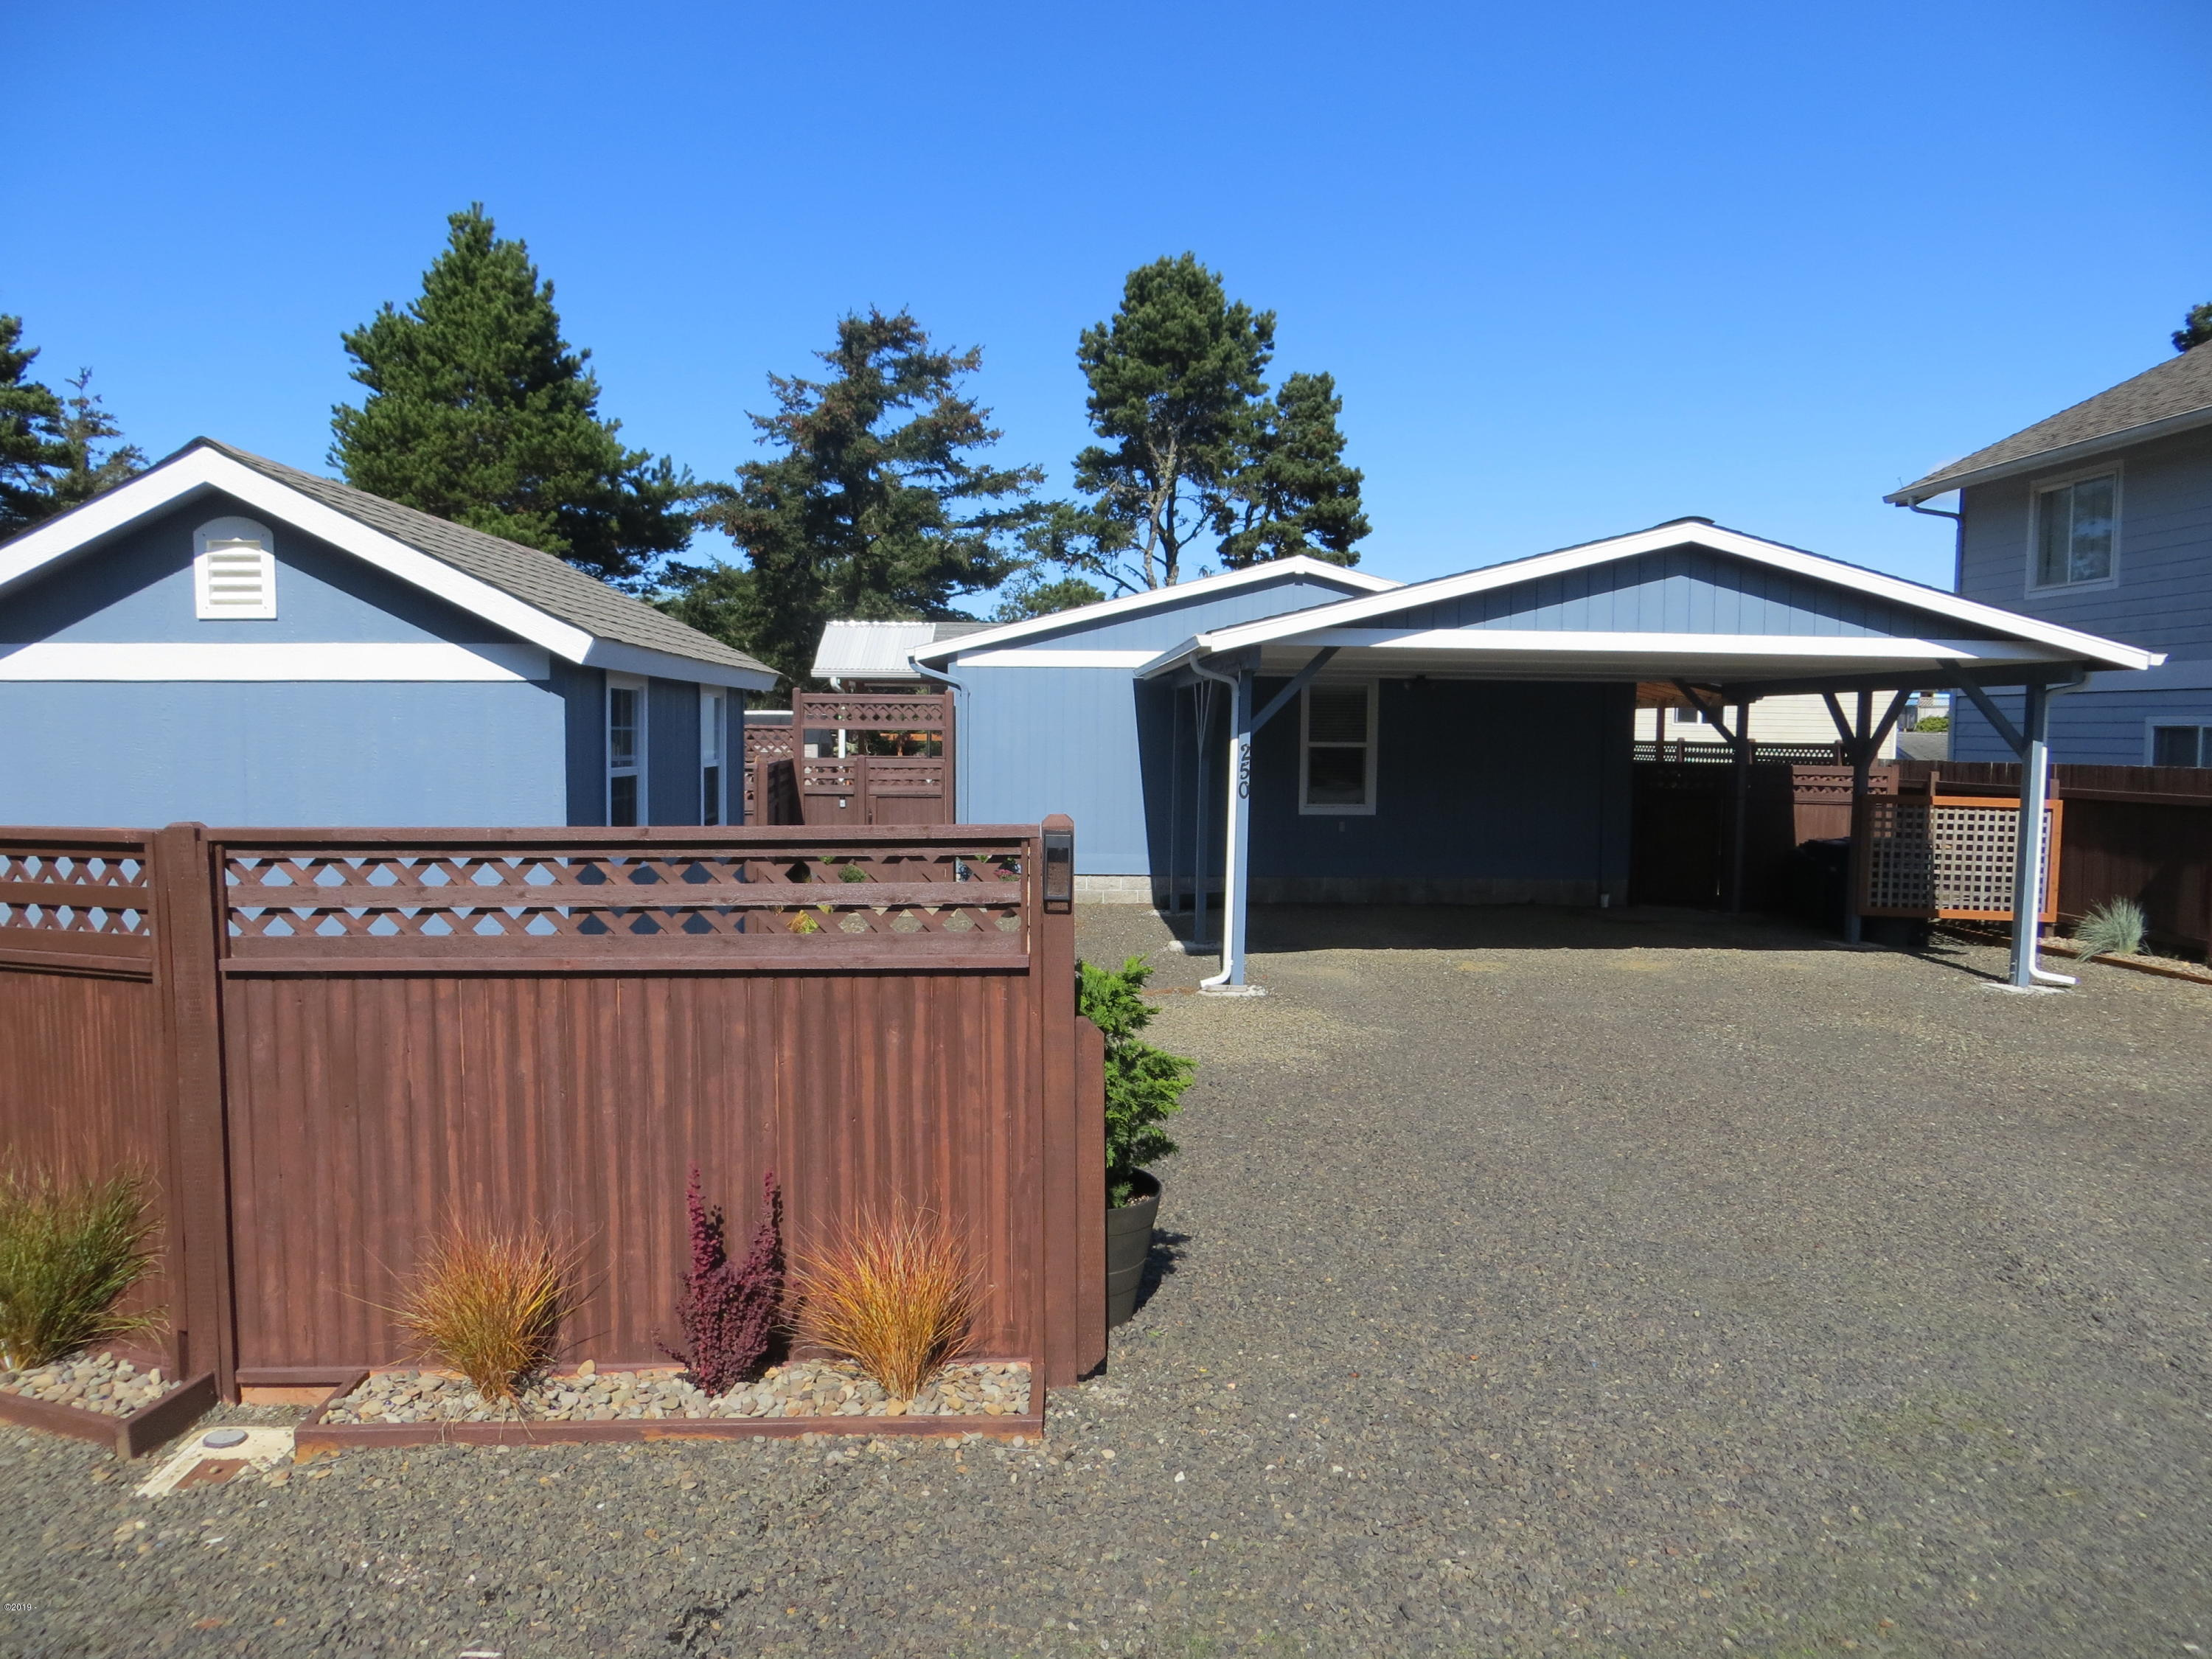 250 SW 30th St, Newport, OR 97365 - View from street